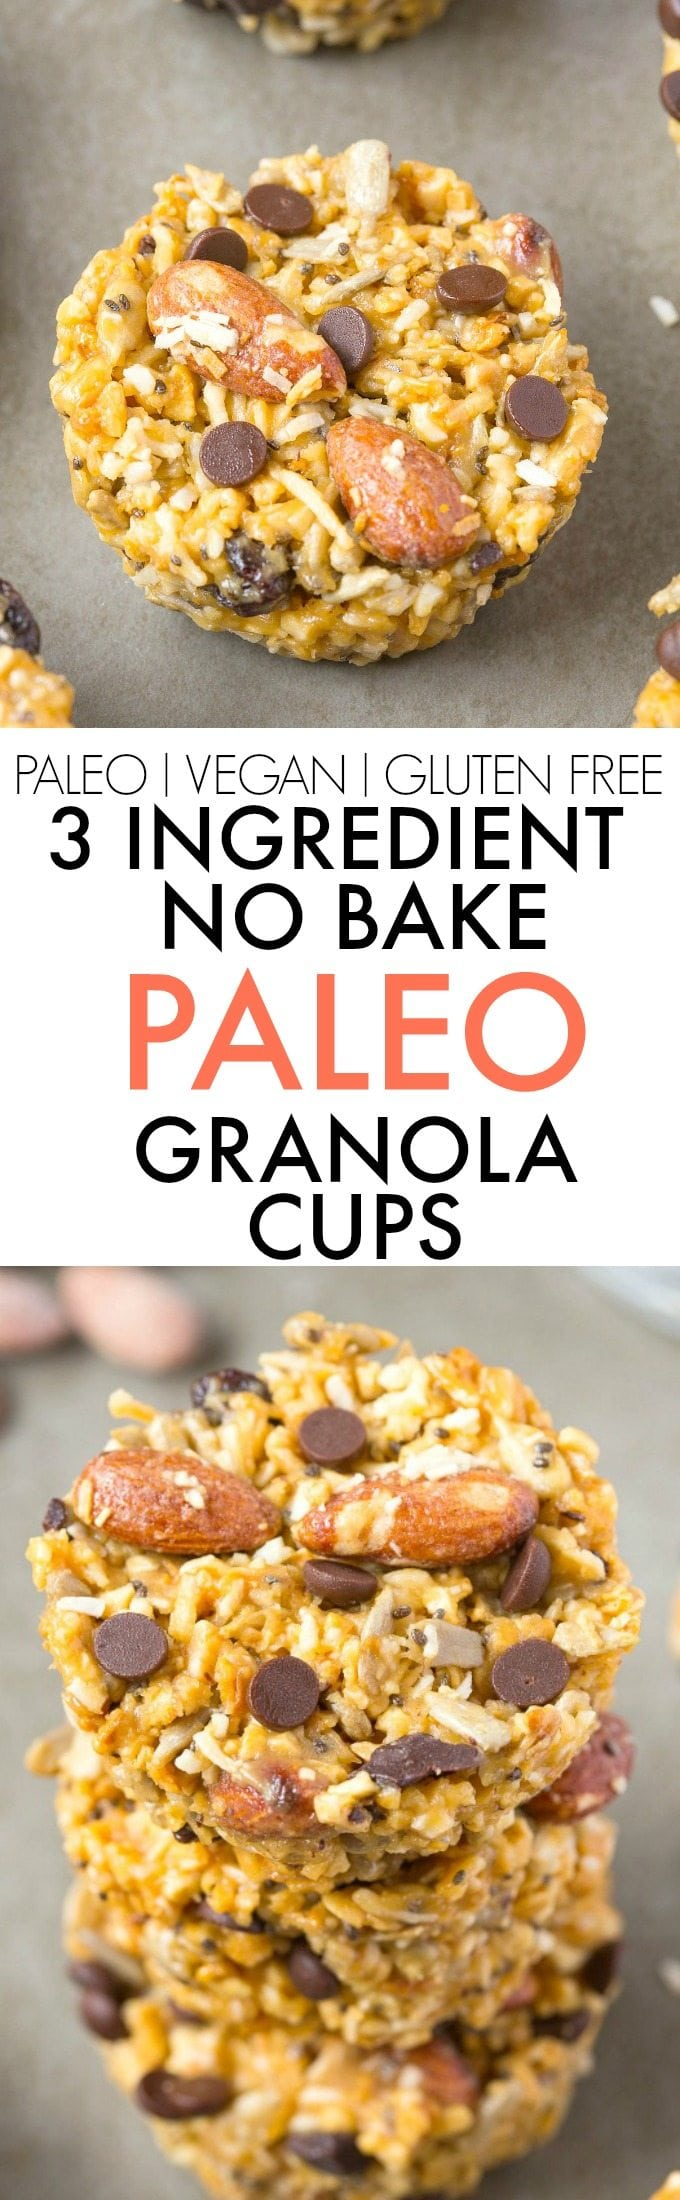 Healthy 3 Ingredient No Bake PALEO Granola Cups- Quick, easy and simple to whip up, these healthy snacks are perfect for back to school, lunch boxes and 100% GRAIN FREE! {vegan, gluten free, paleo recipe}- thebigmansworld.com